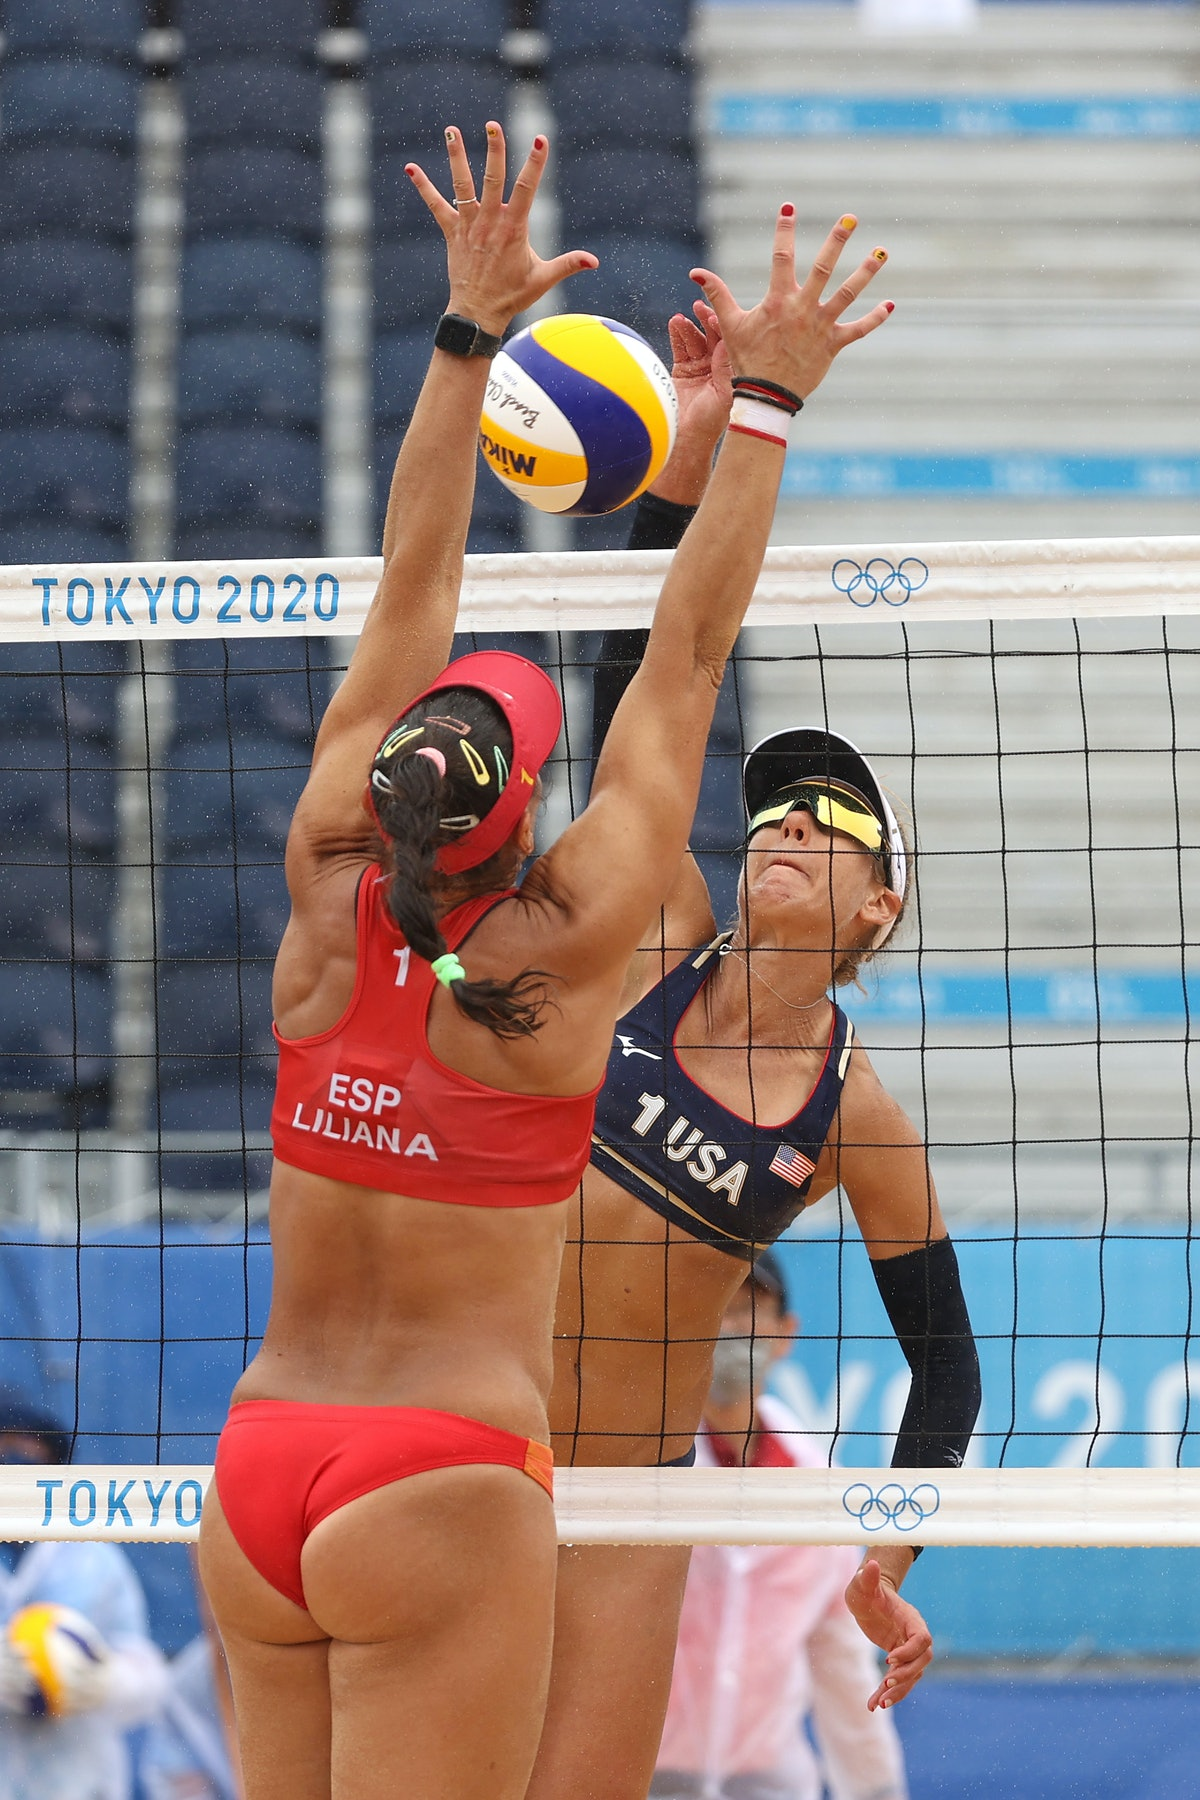 TOKYO, JAPAN - JULY 27: April Ross #1 of Team United States hits through the arms of Liliana Fernand...